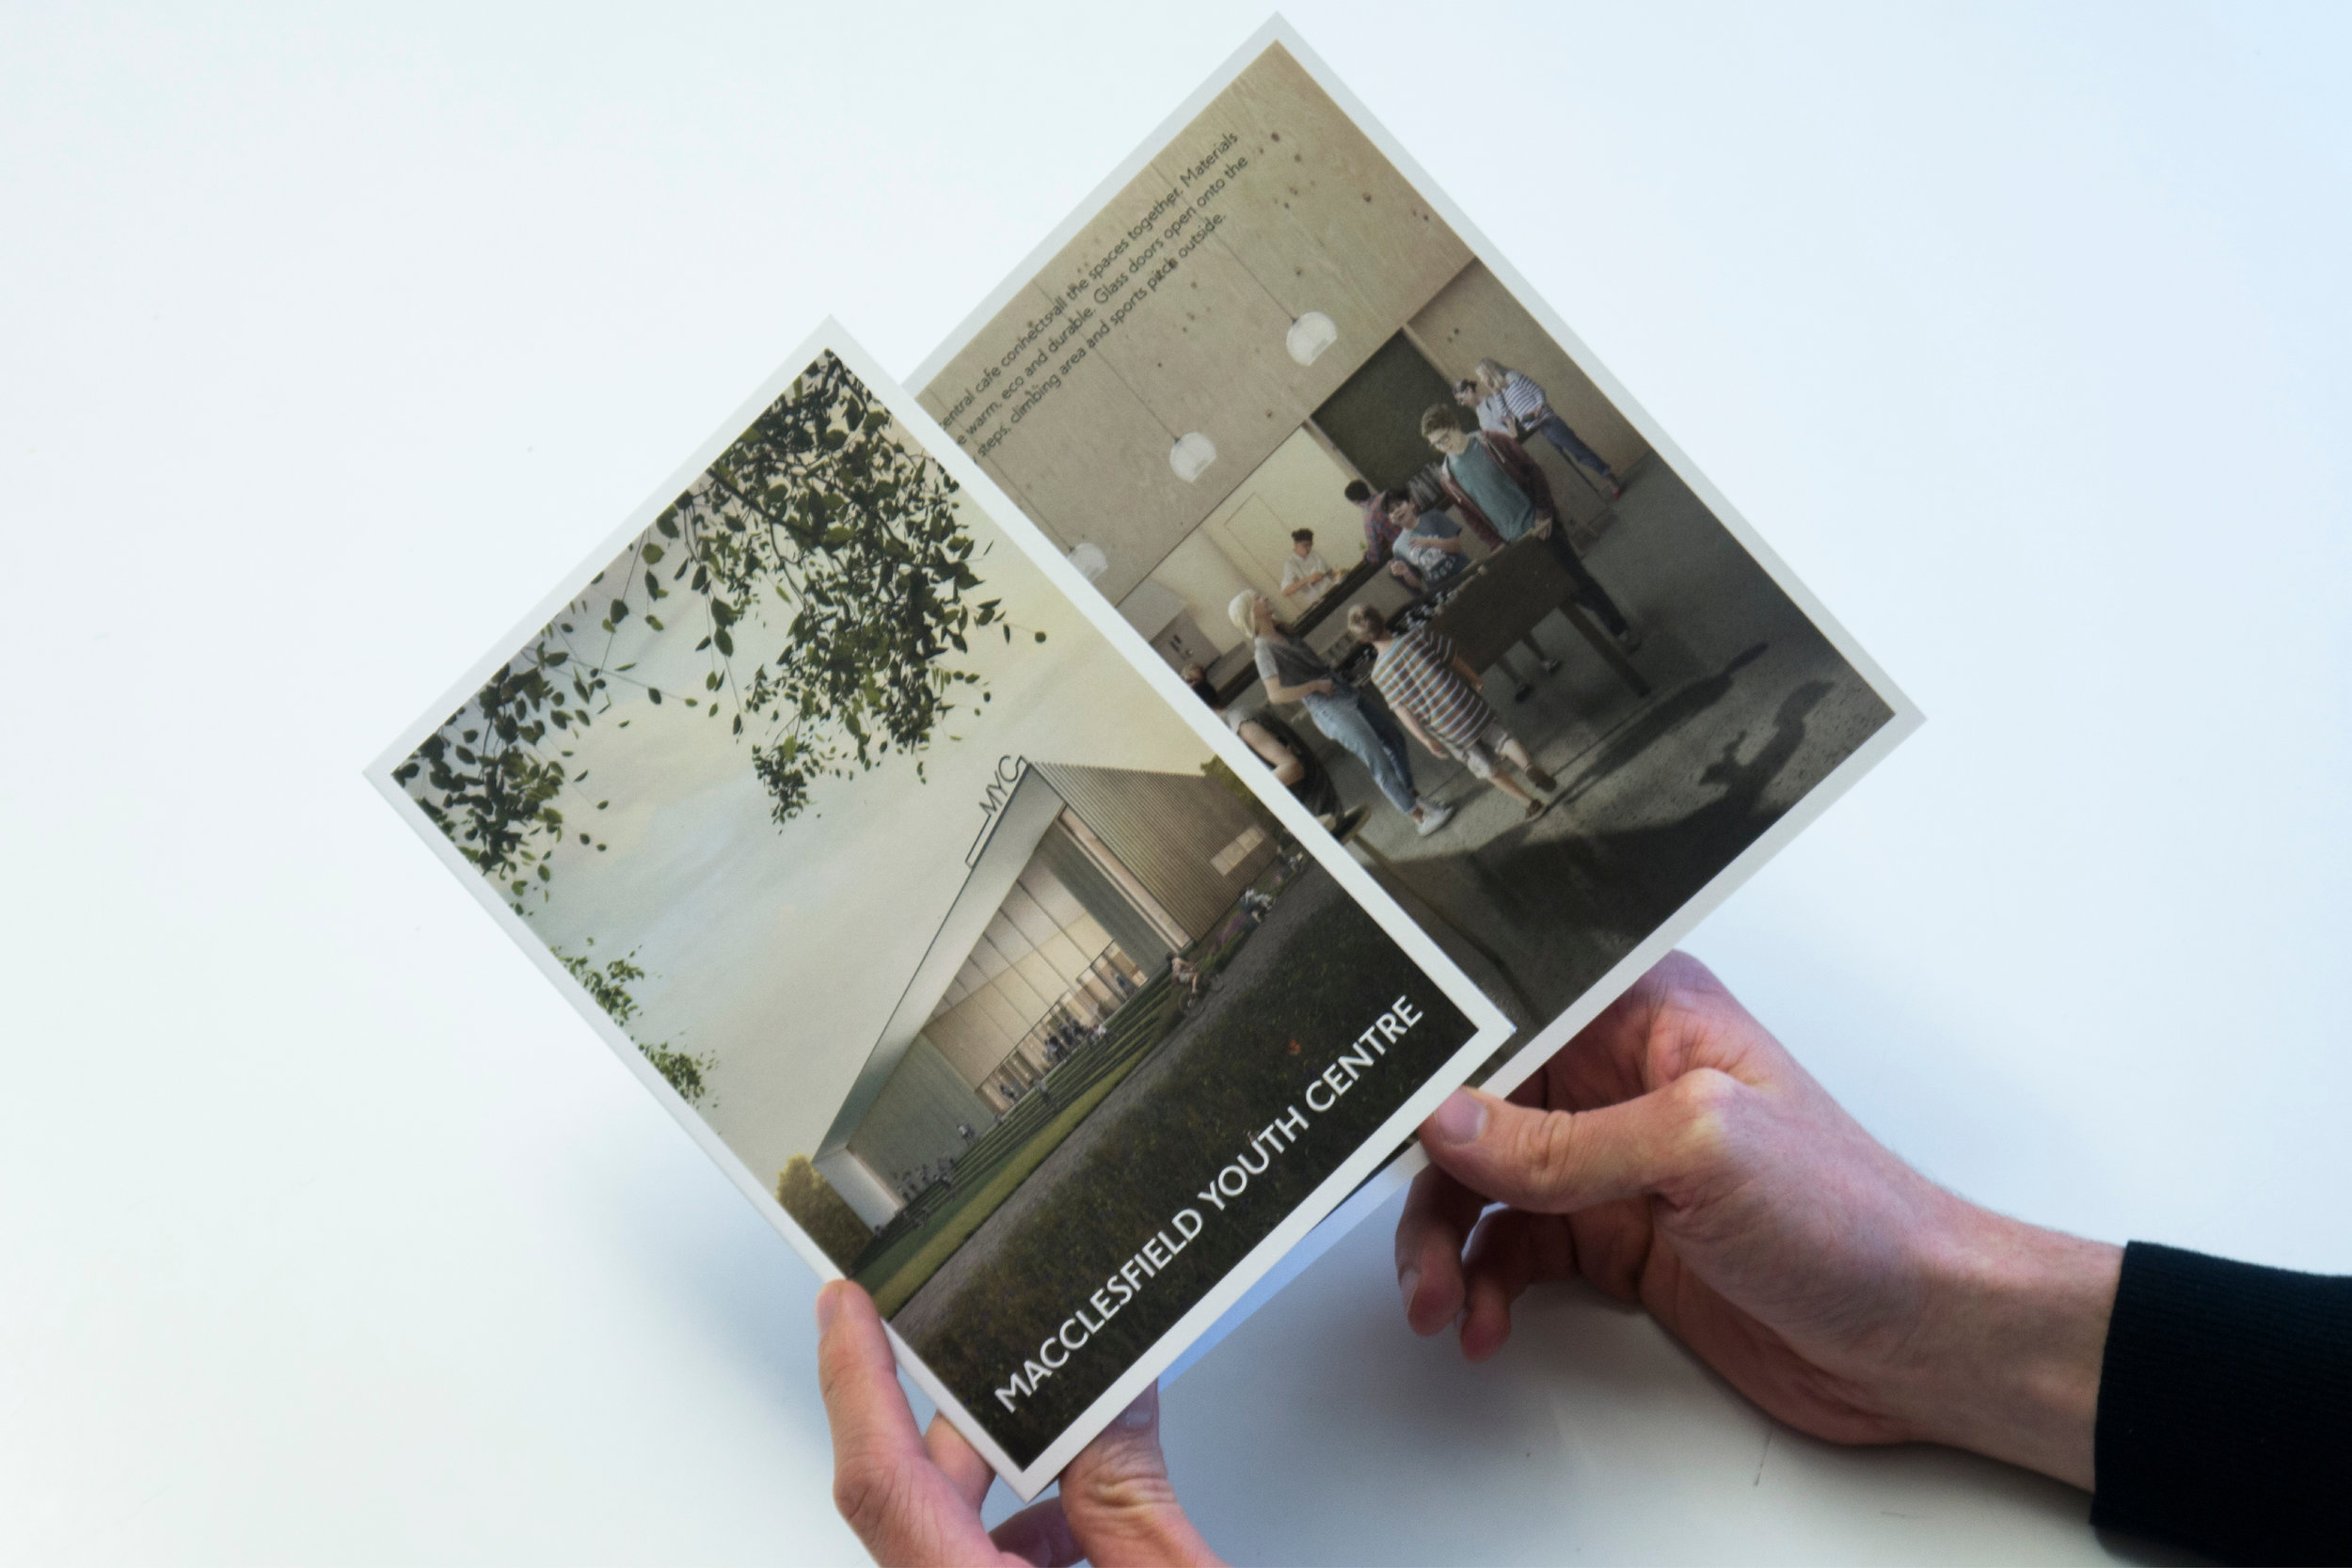 Marketing Booklet for New Youth Centre in Macclesfield